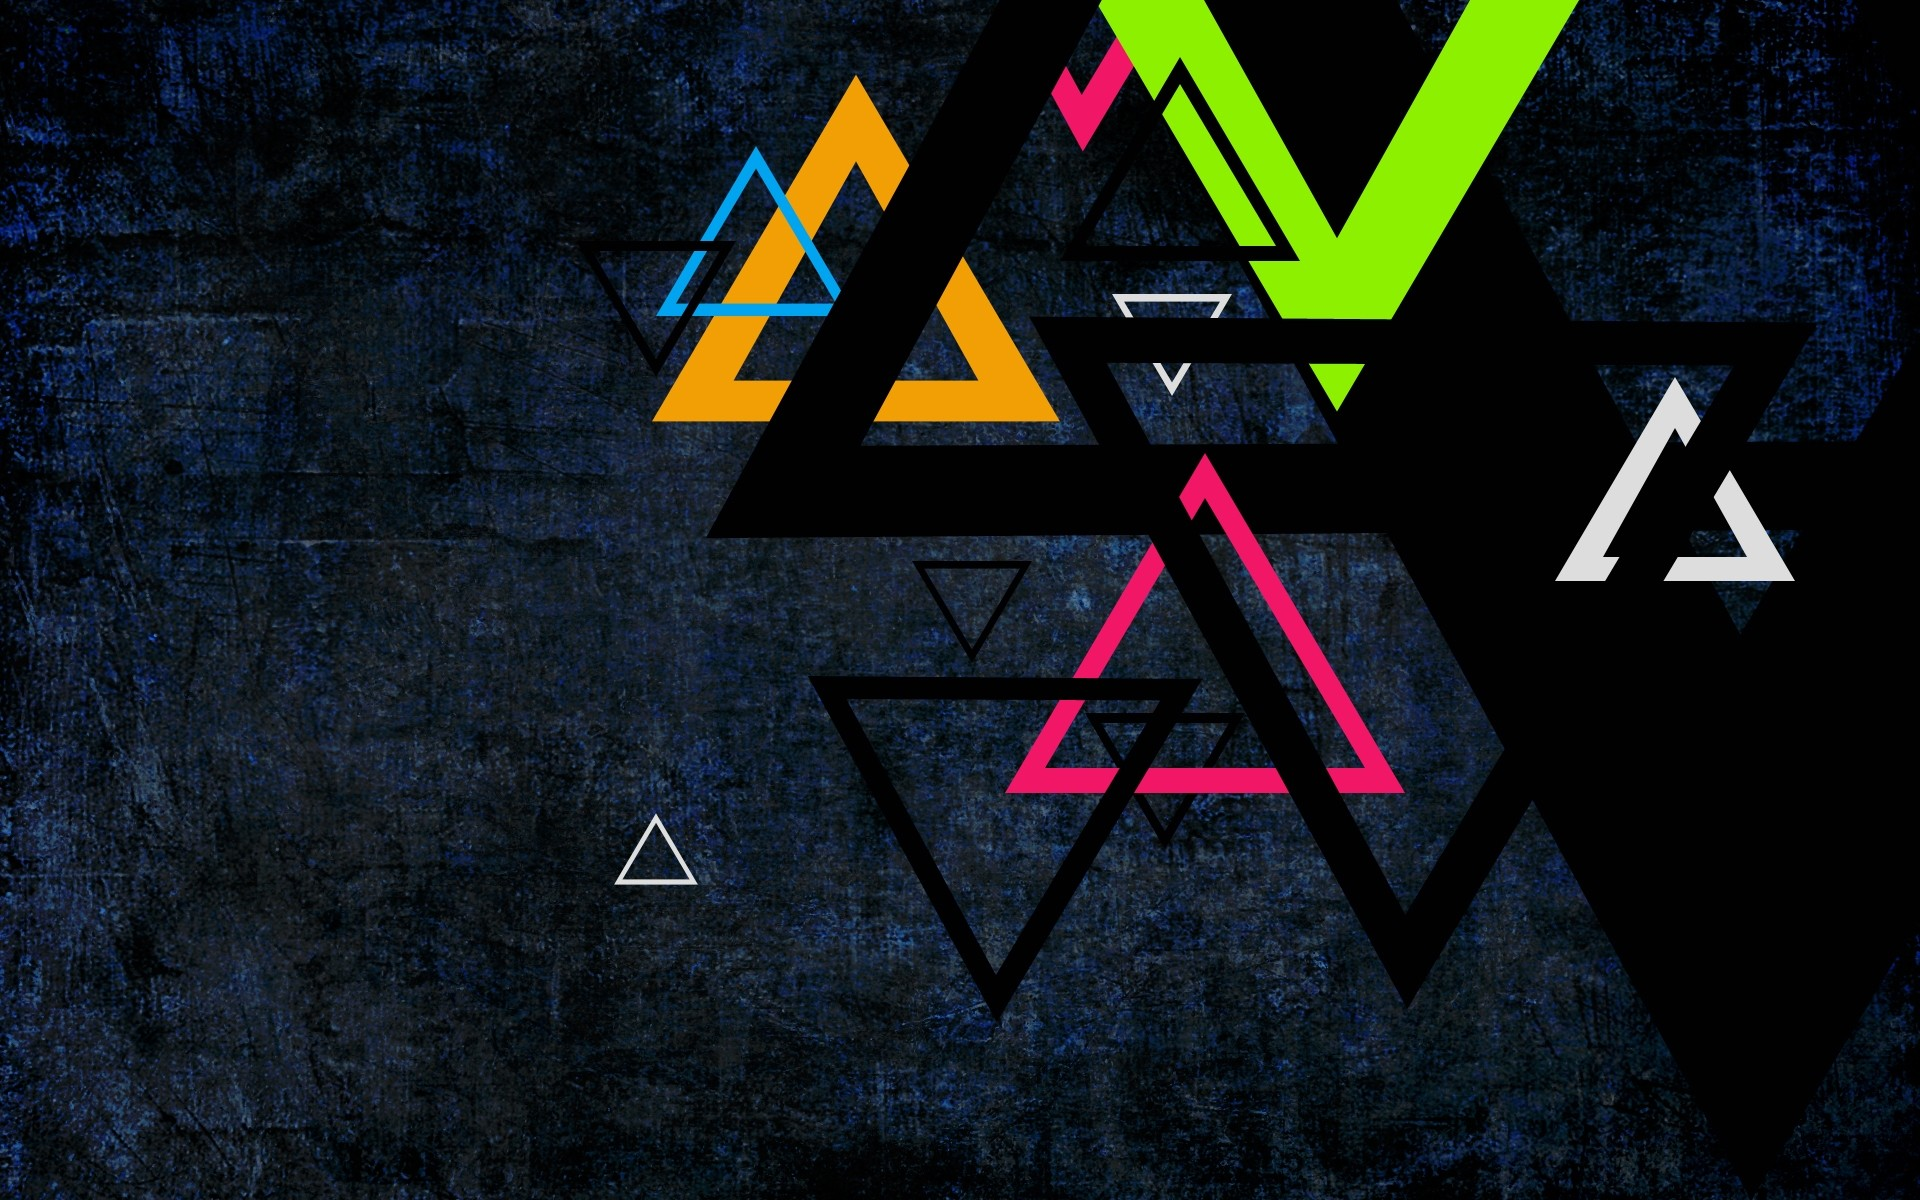 Colorful Triangles - Phone wallpapers